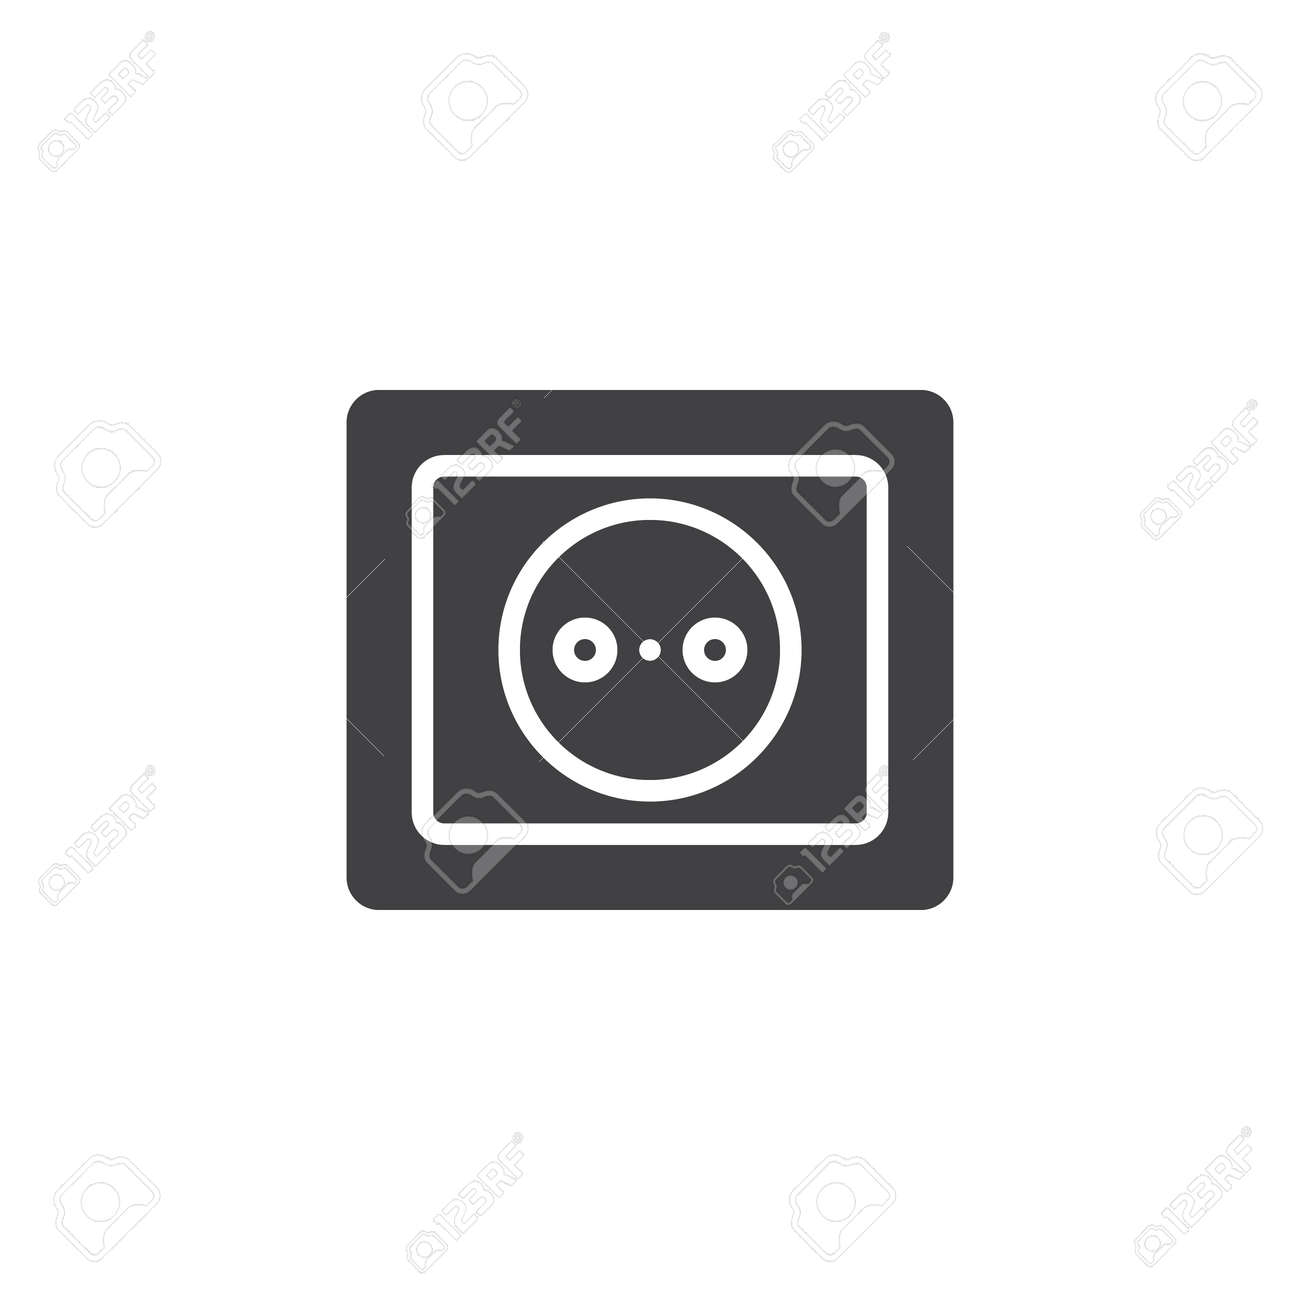 Power Socket Icon Vector Filled Flat Sign Solid Pictogram Isolated